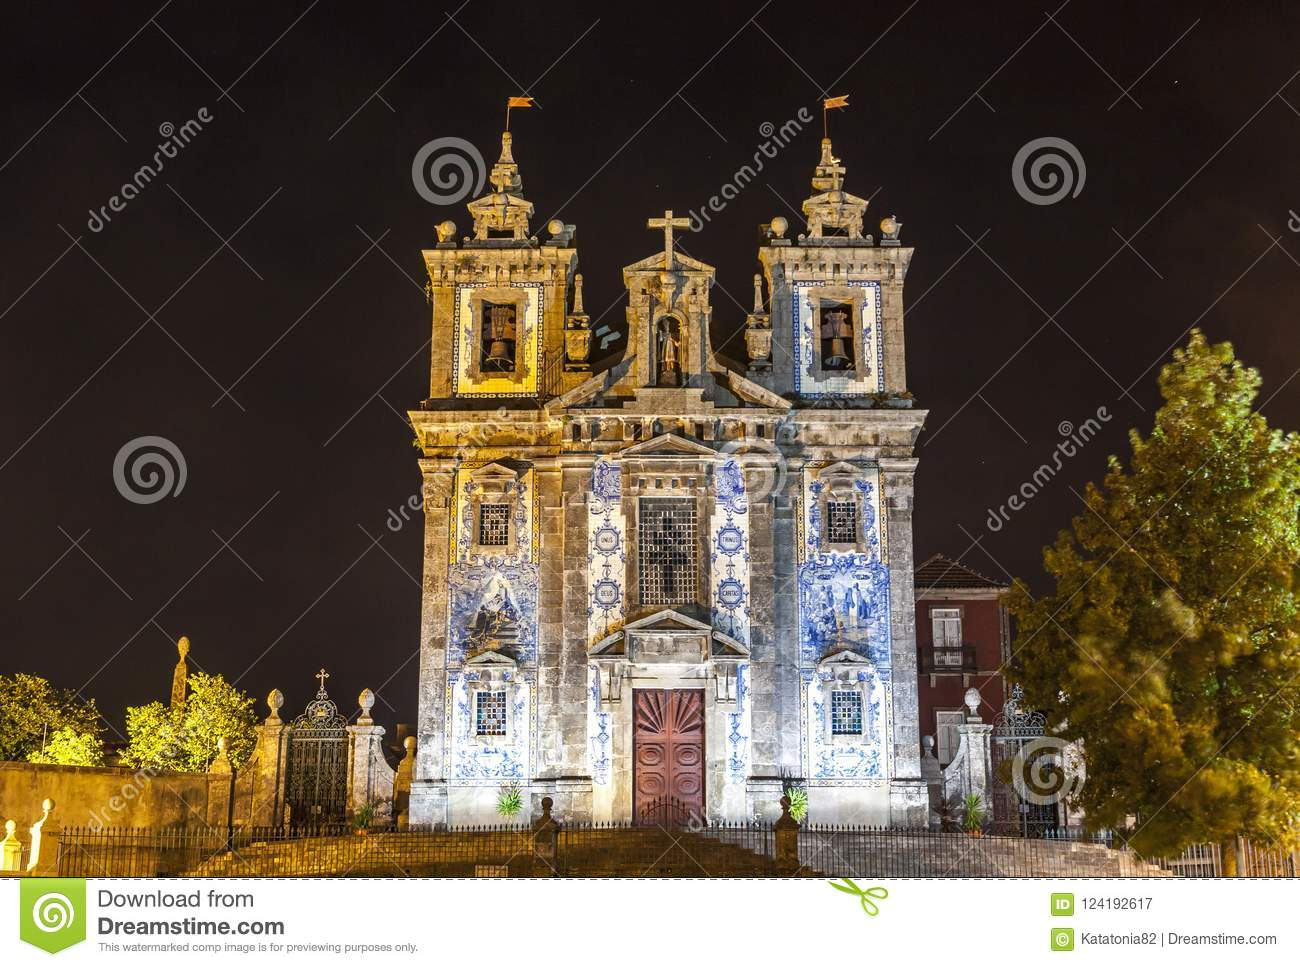 Facade of Church of Saint Ildefonso in Porto city, Portugal